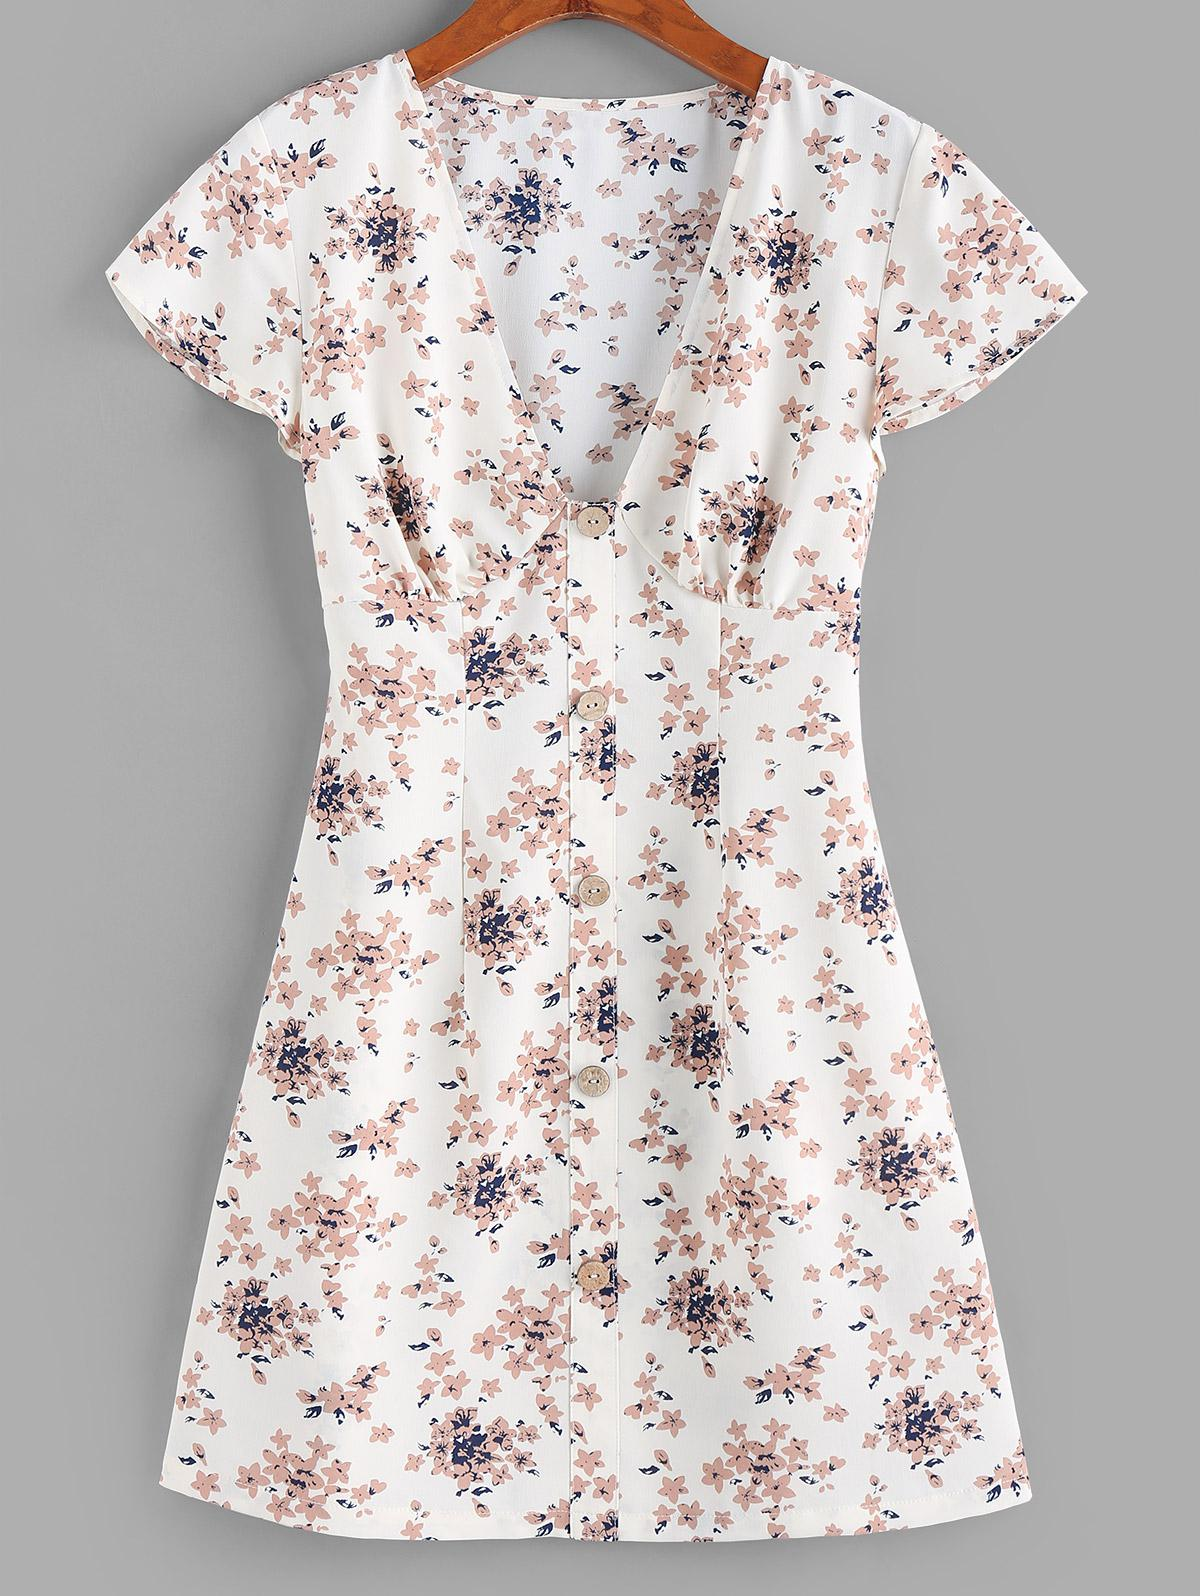 ZAFUL Flower Plunging Button Embellished Mini Dress